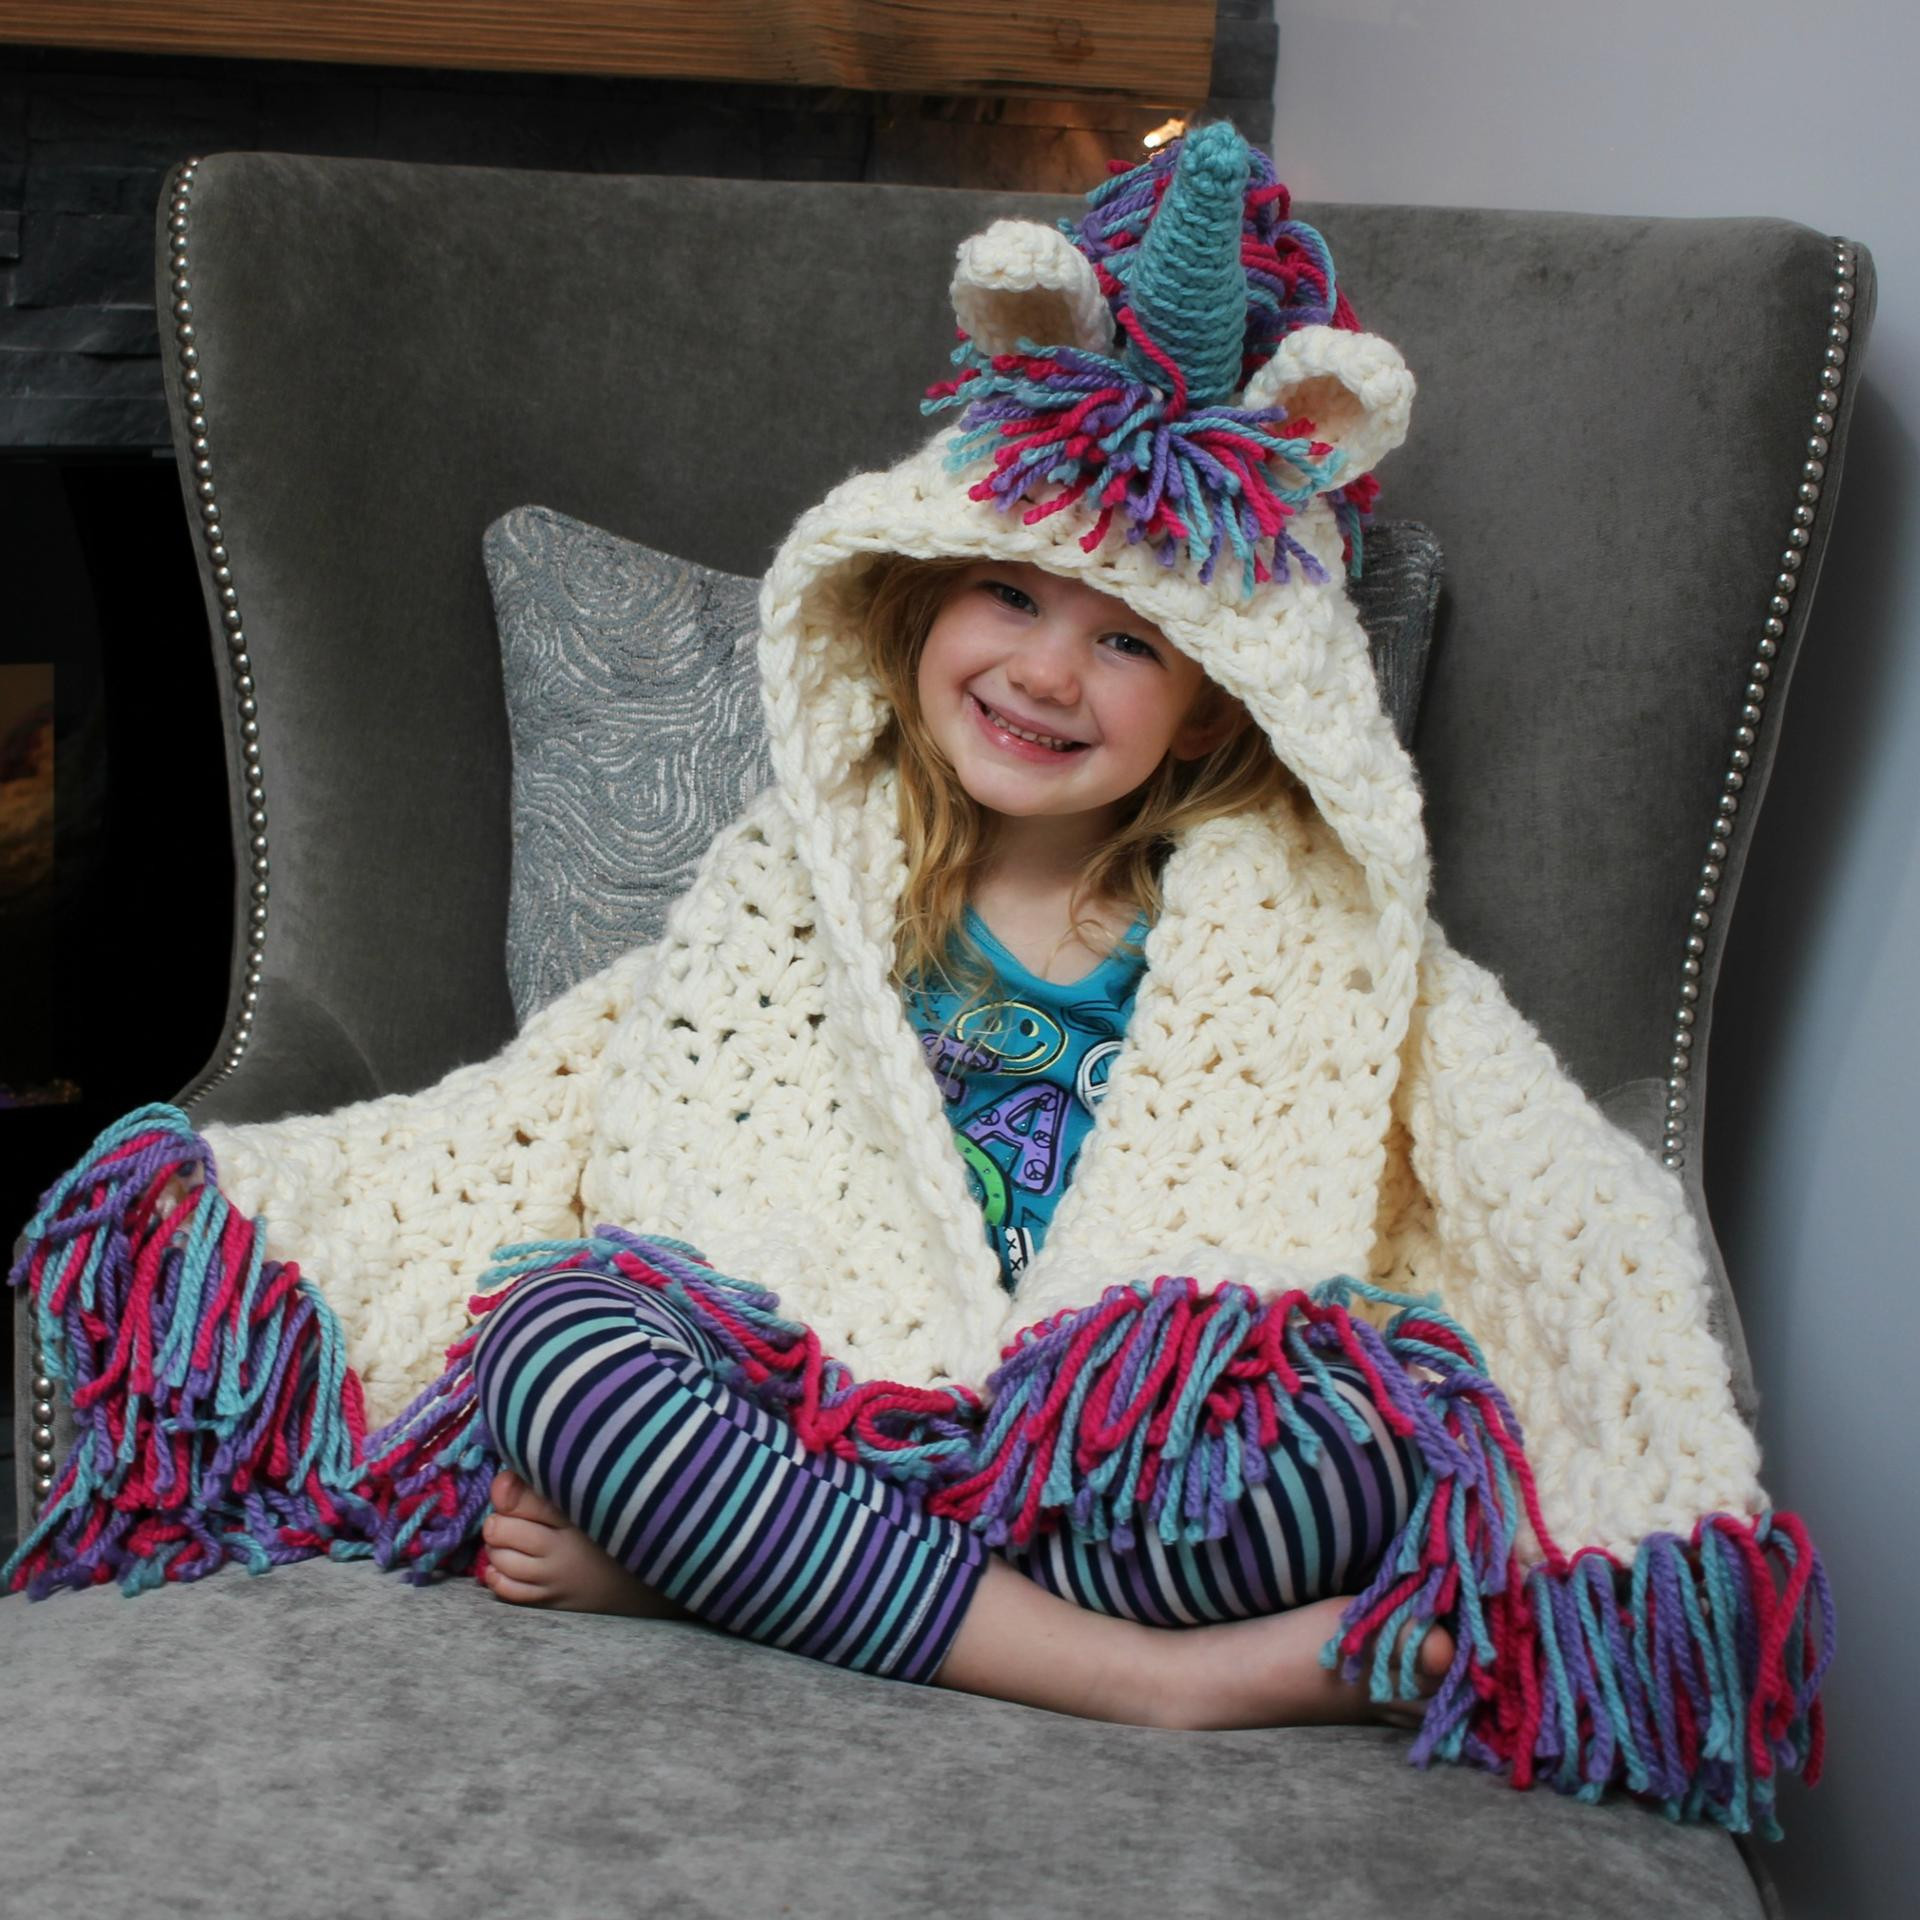 Unicorn Blanket Pattern Lovely 10 Crochet Hooded Blanket Patterns for Kids and Adults Of Lovely 48 Photos Unicorn Blanket Pattern